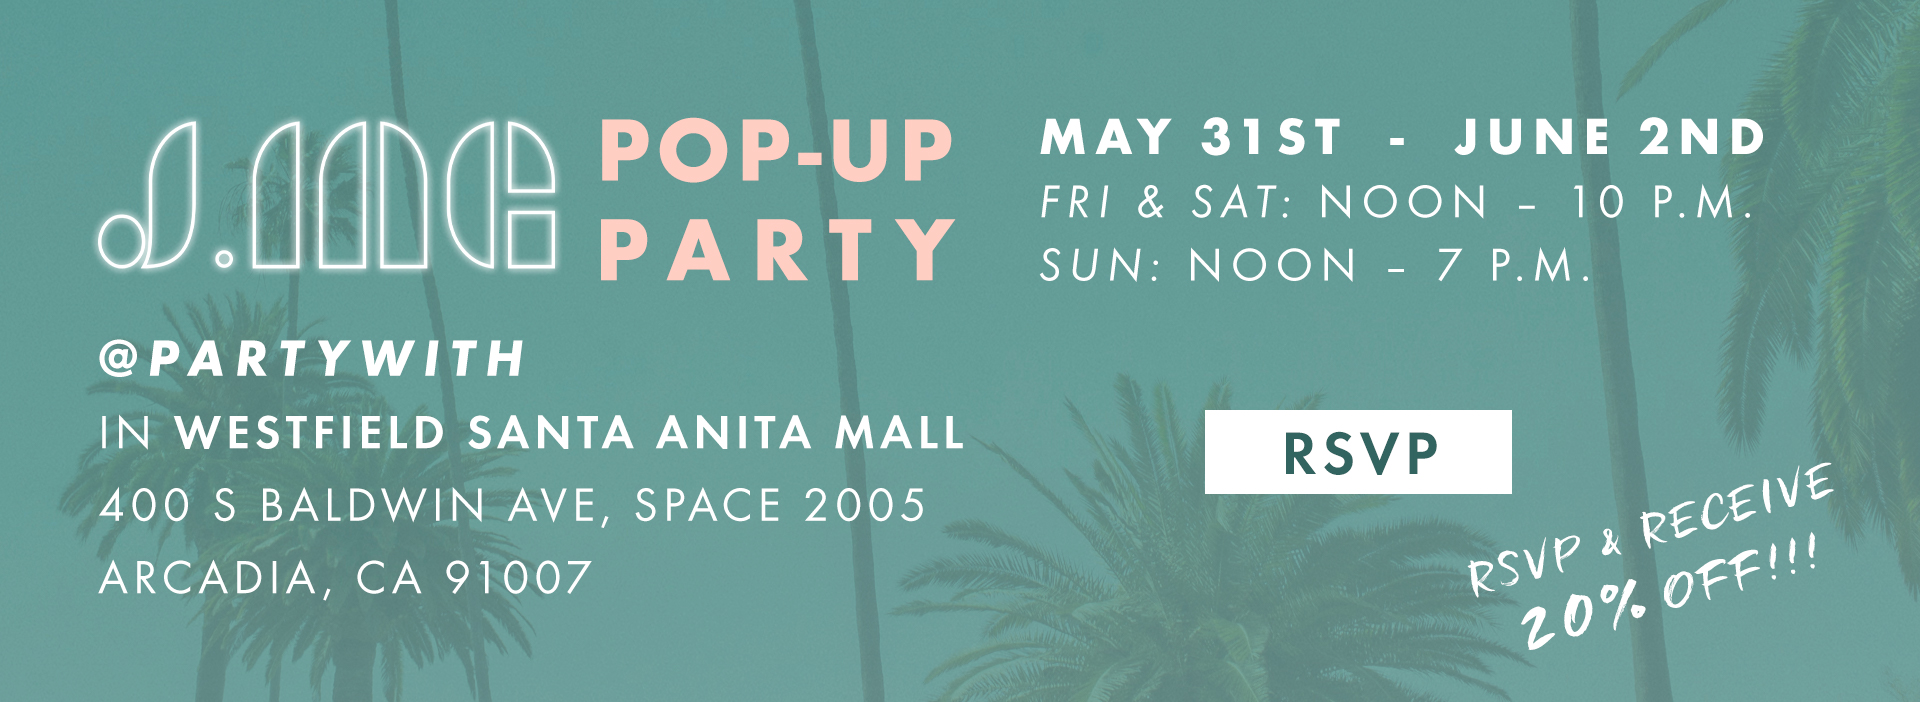 J.ING POPUP Party